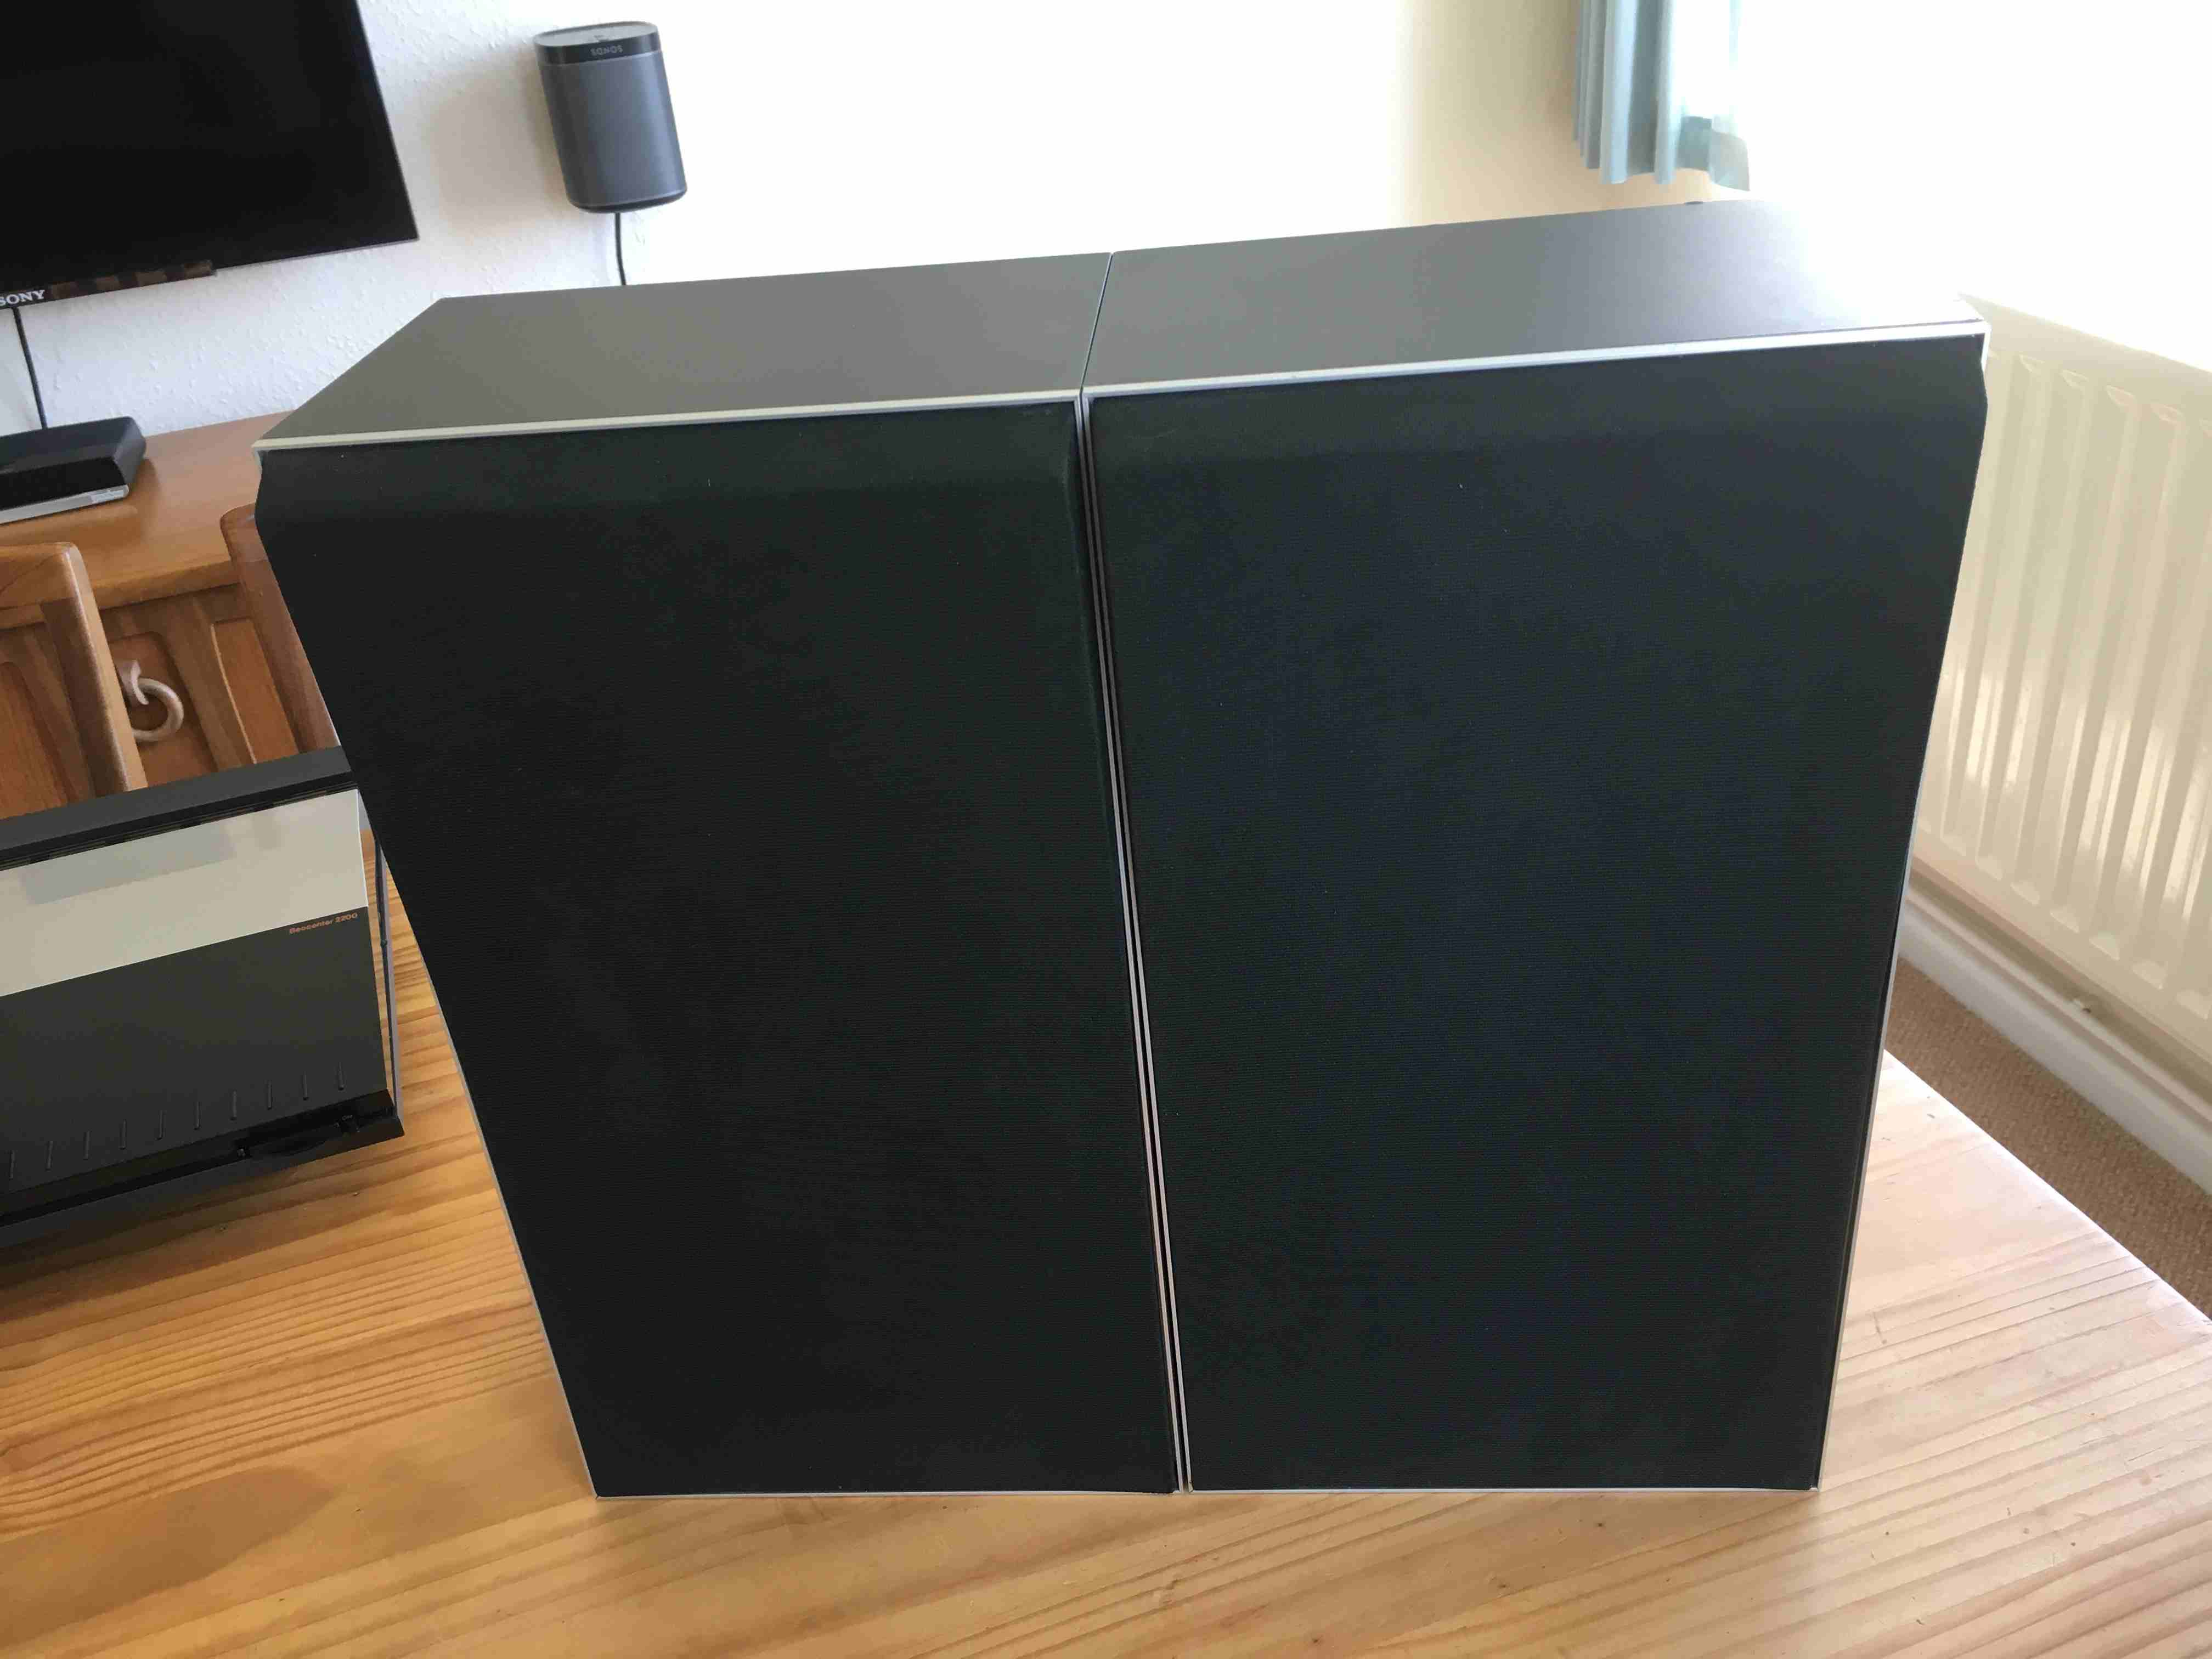 Bang and Olufsen S2200 speakers